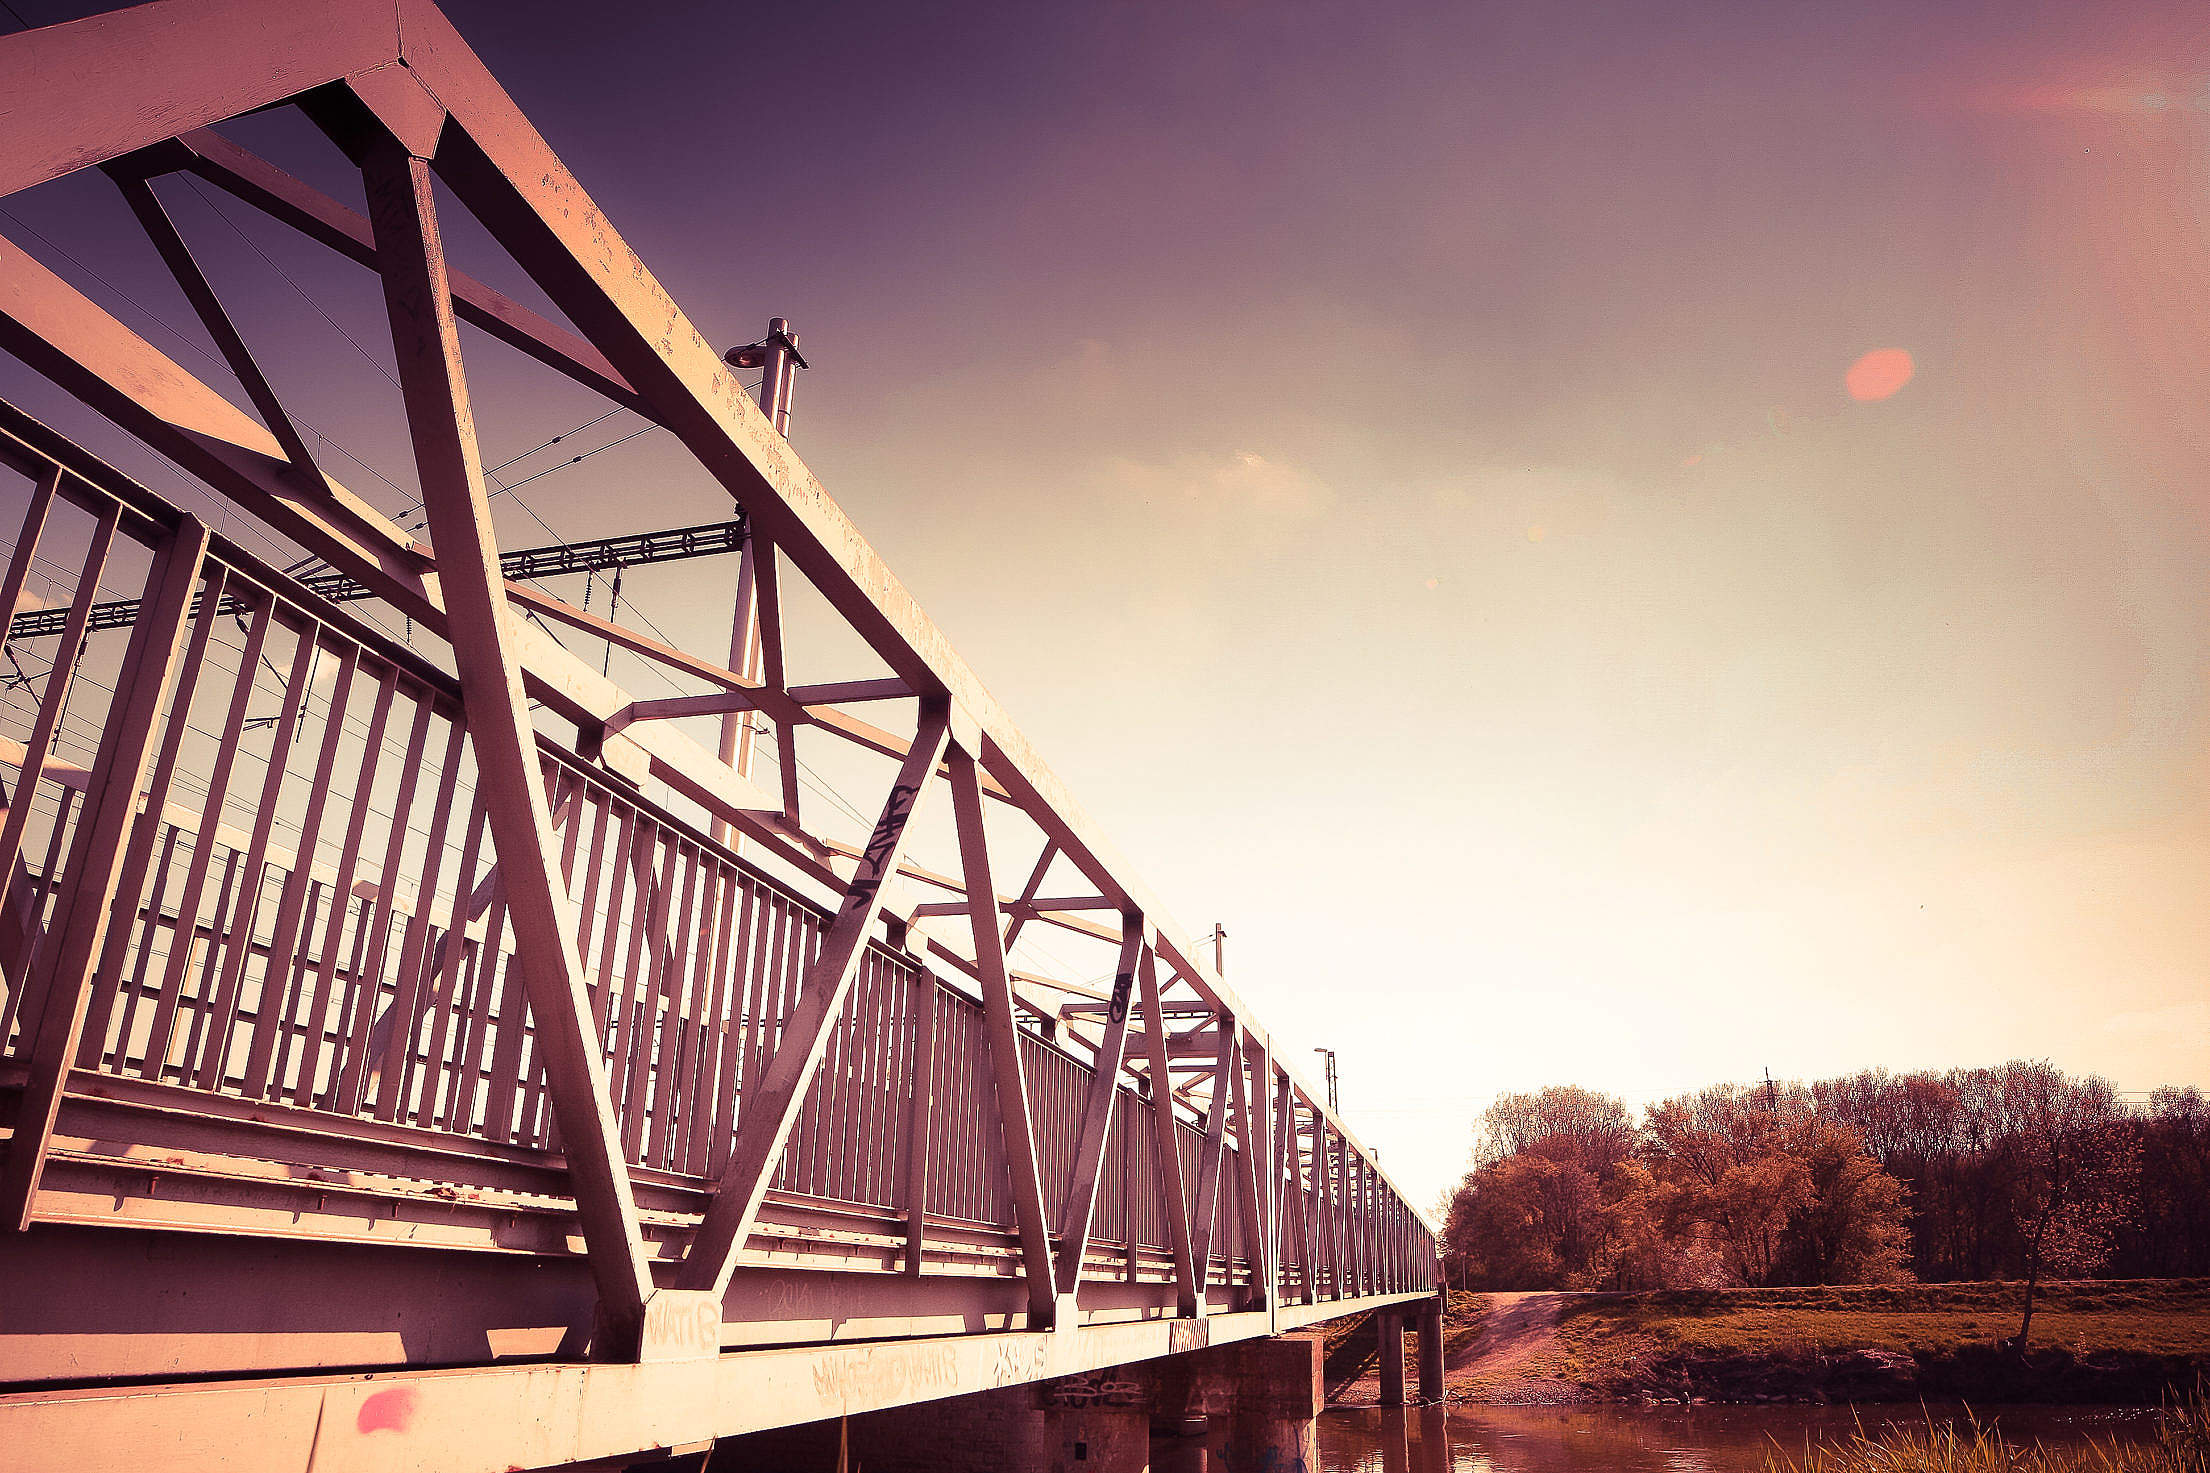 Another Edit of Steel Bridge Free Stock Photo